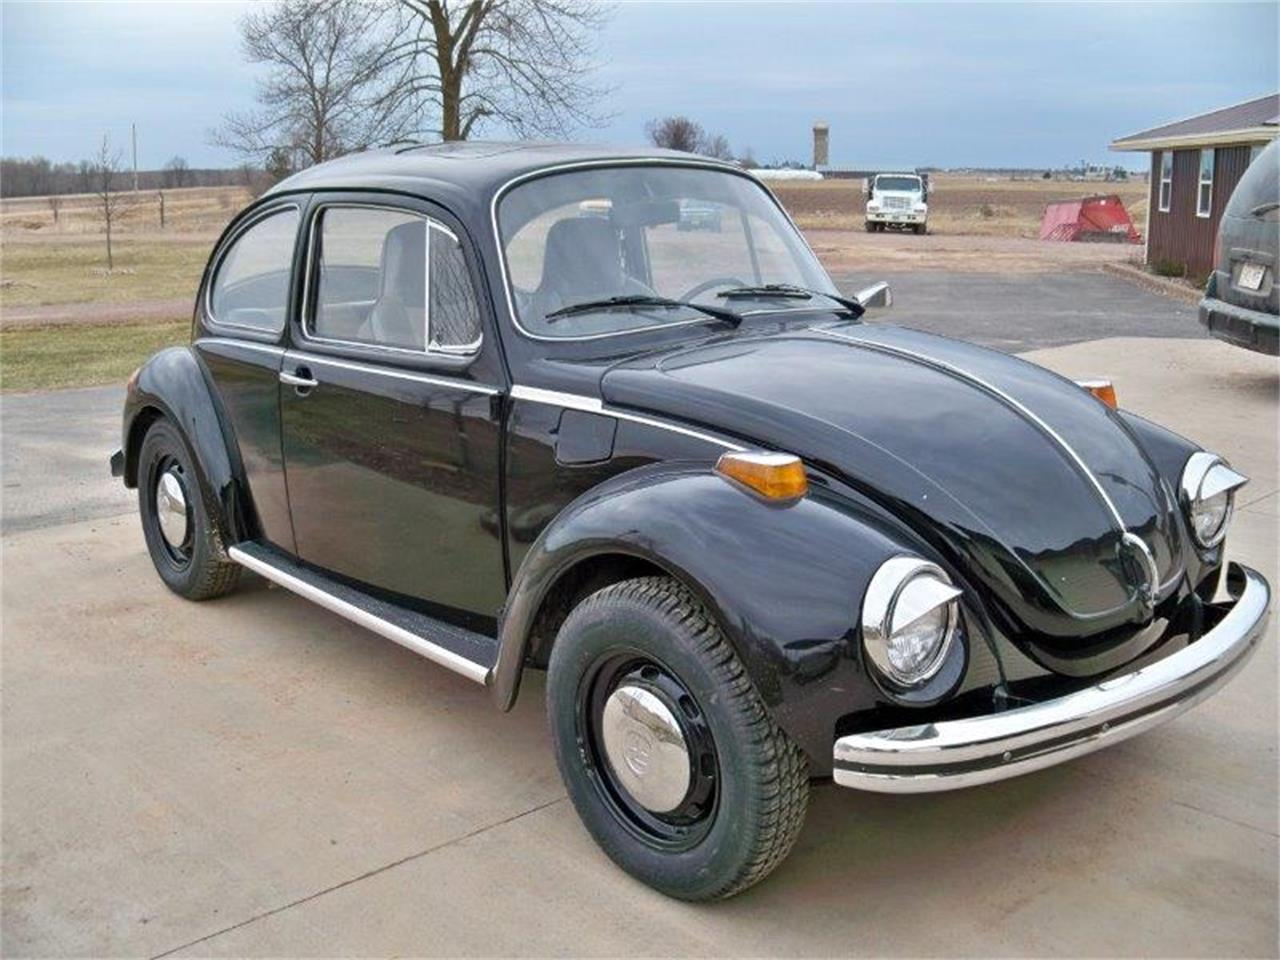 Large Picture of Classic '73 Volkswagen Super Beetle located in Loyal Wisconsin - $6,500.00 - HQST